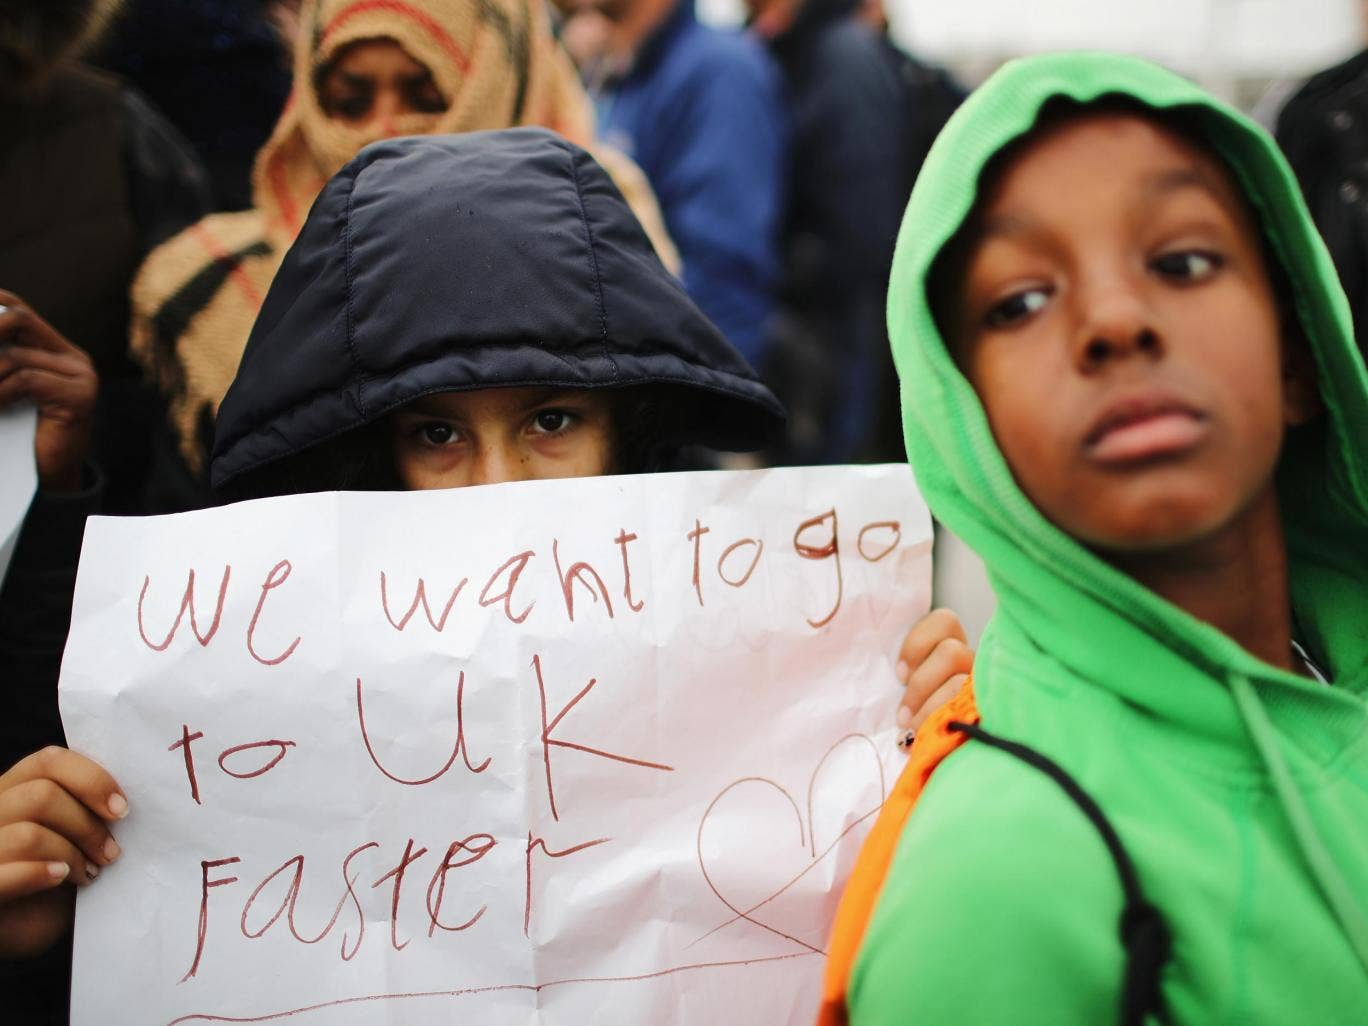 More than 100 child refugees missing in UK after being smuggled from Calais